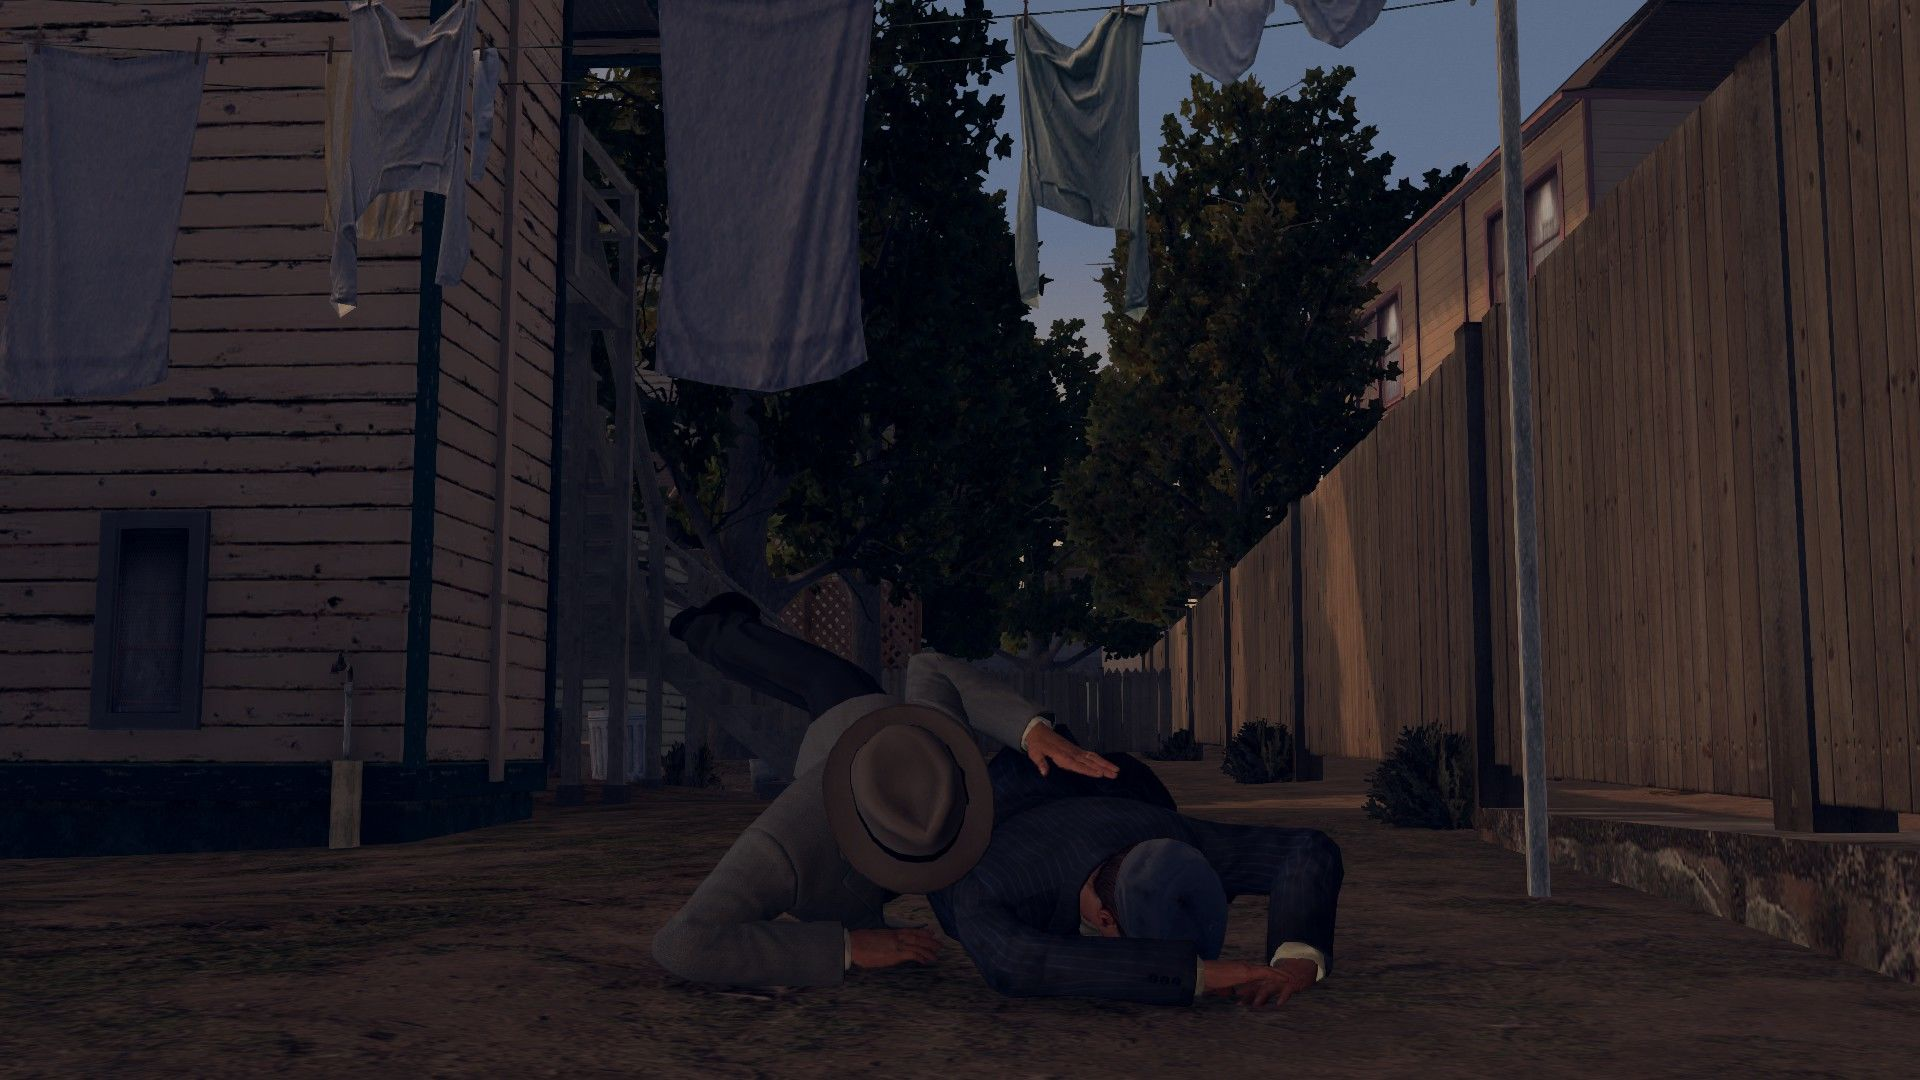 L.A. Noire: The Complete Edition Windows No one can run from the hands of justice ...